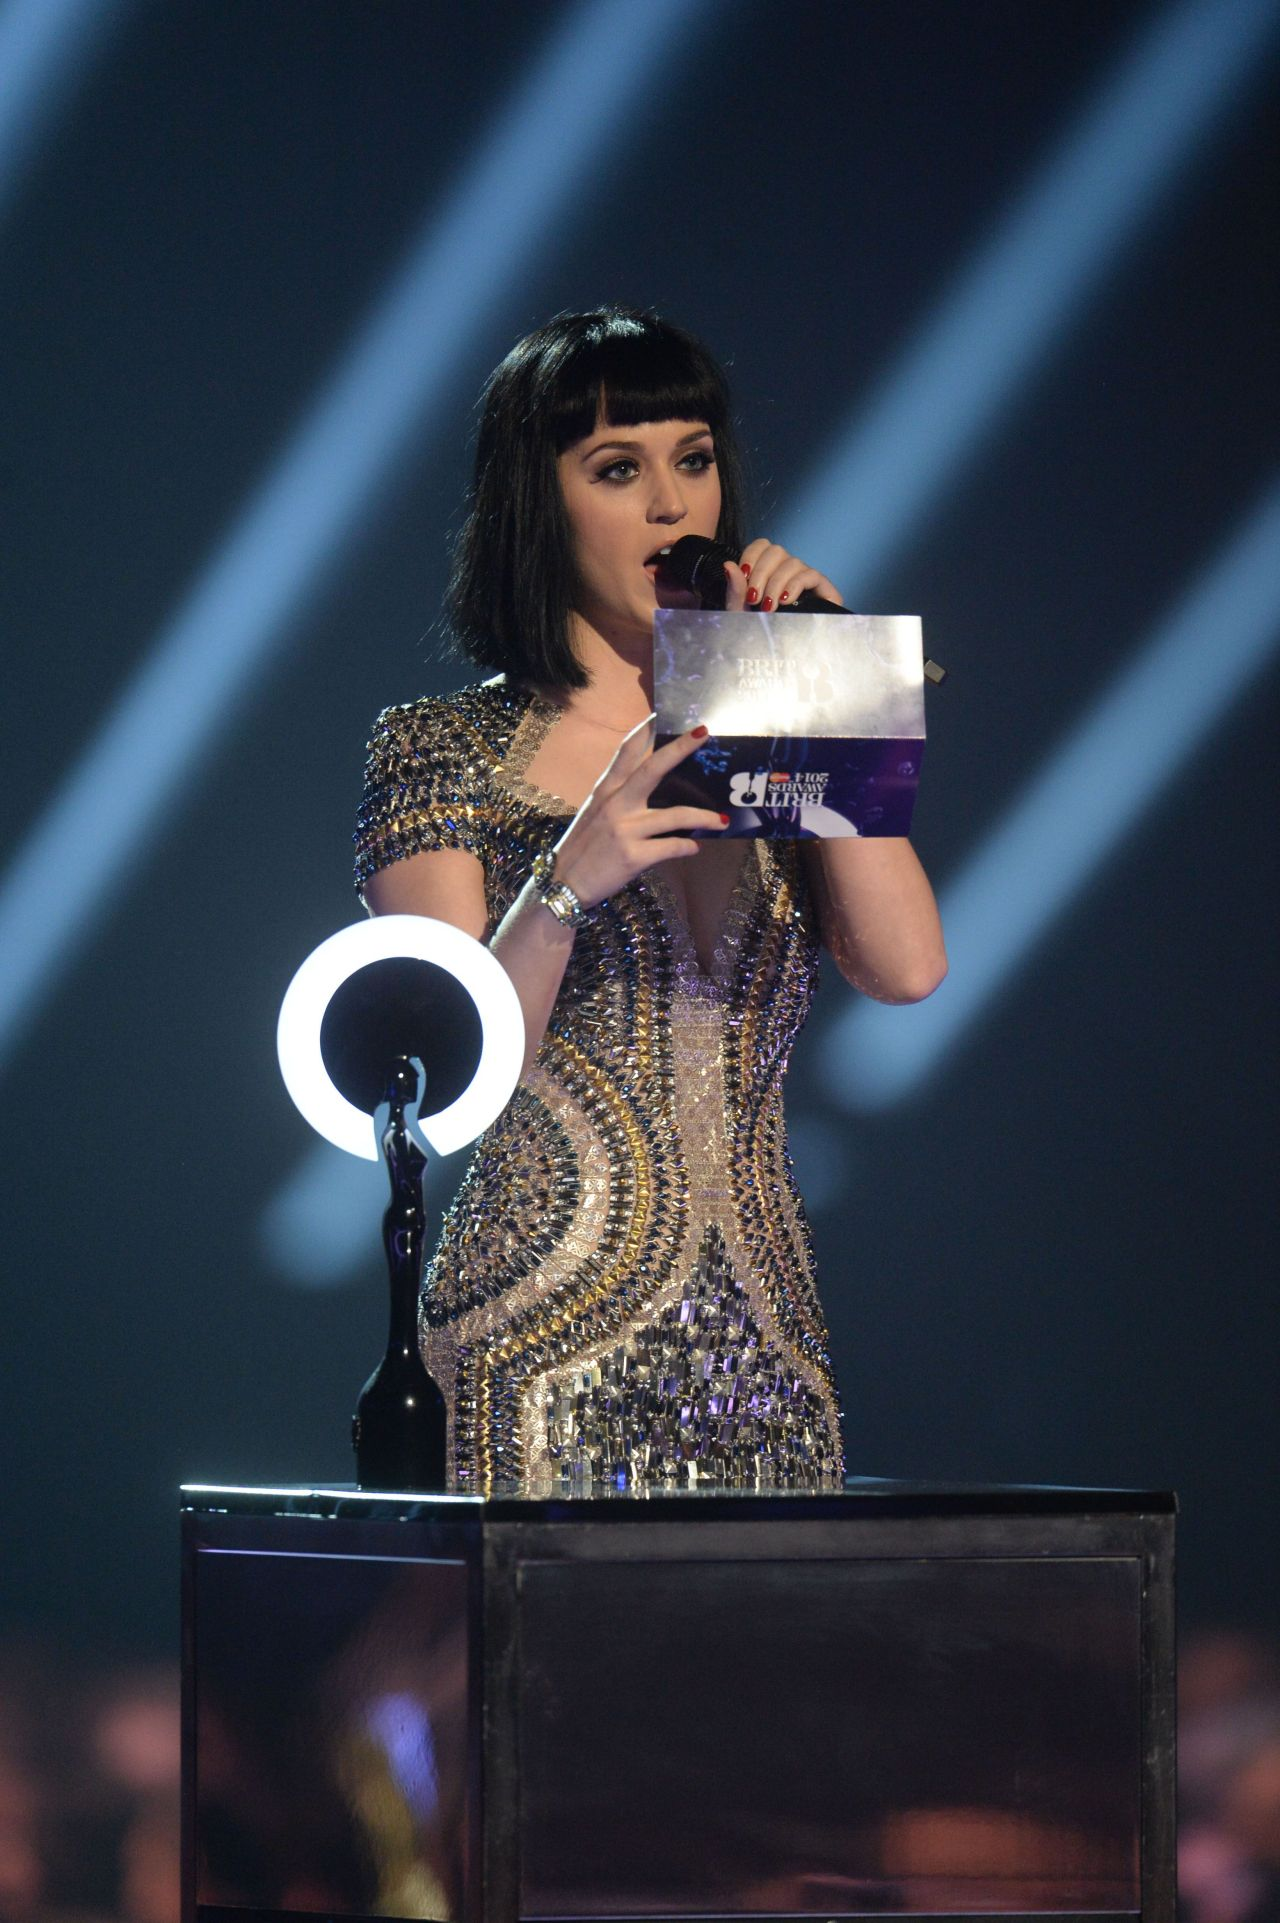 Katy Perry In Dress For The Brit Awards 2014